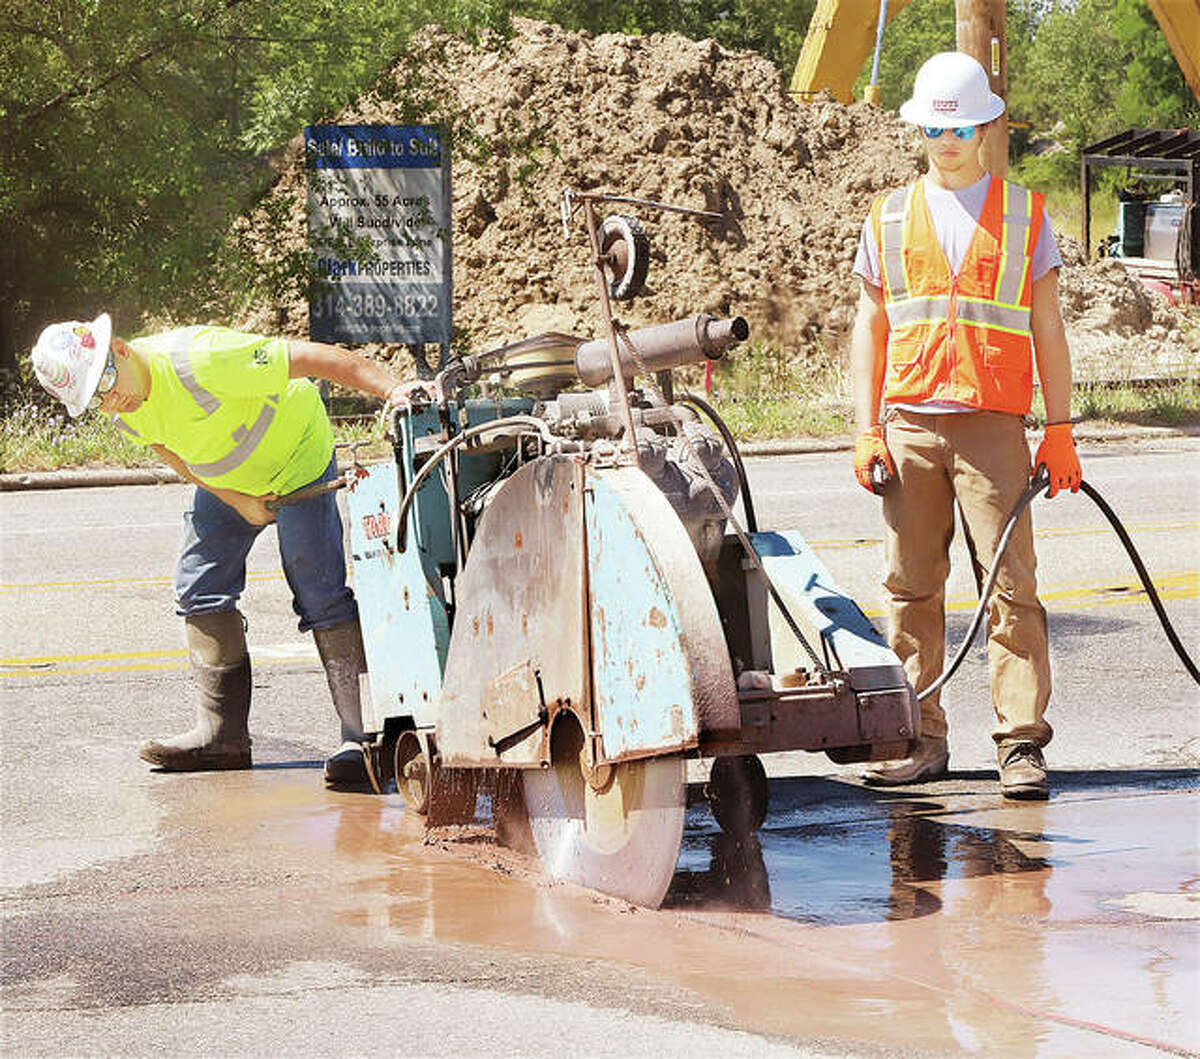 Workers used a giant saw Wedbnesday to cut through the pavement on East Broadway between Washington Avenue and Pearl Street as part of a major sanitary sewer project.